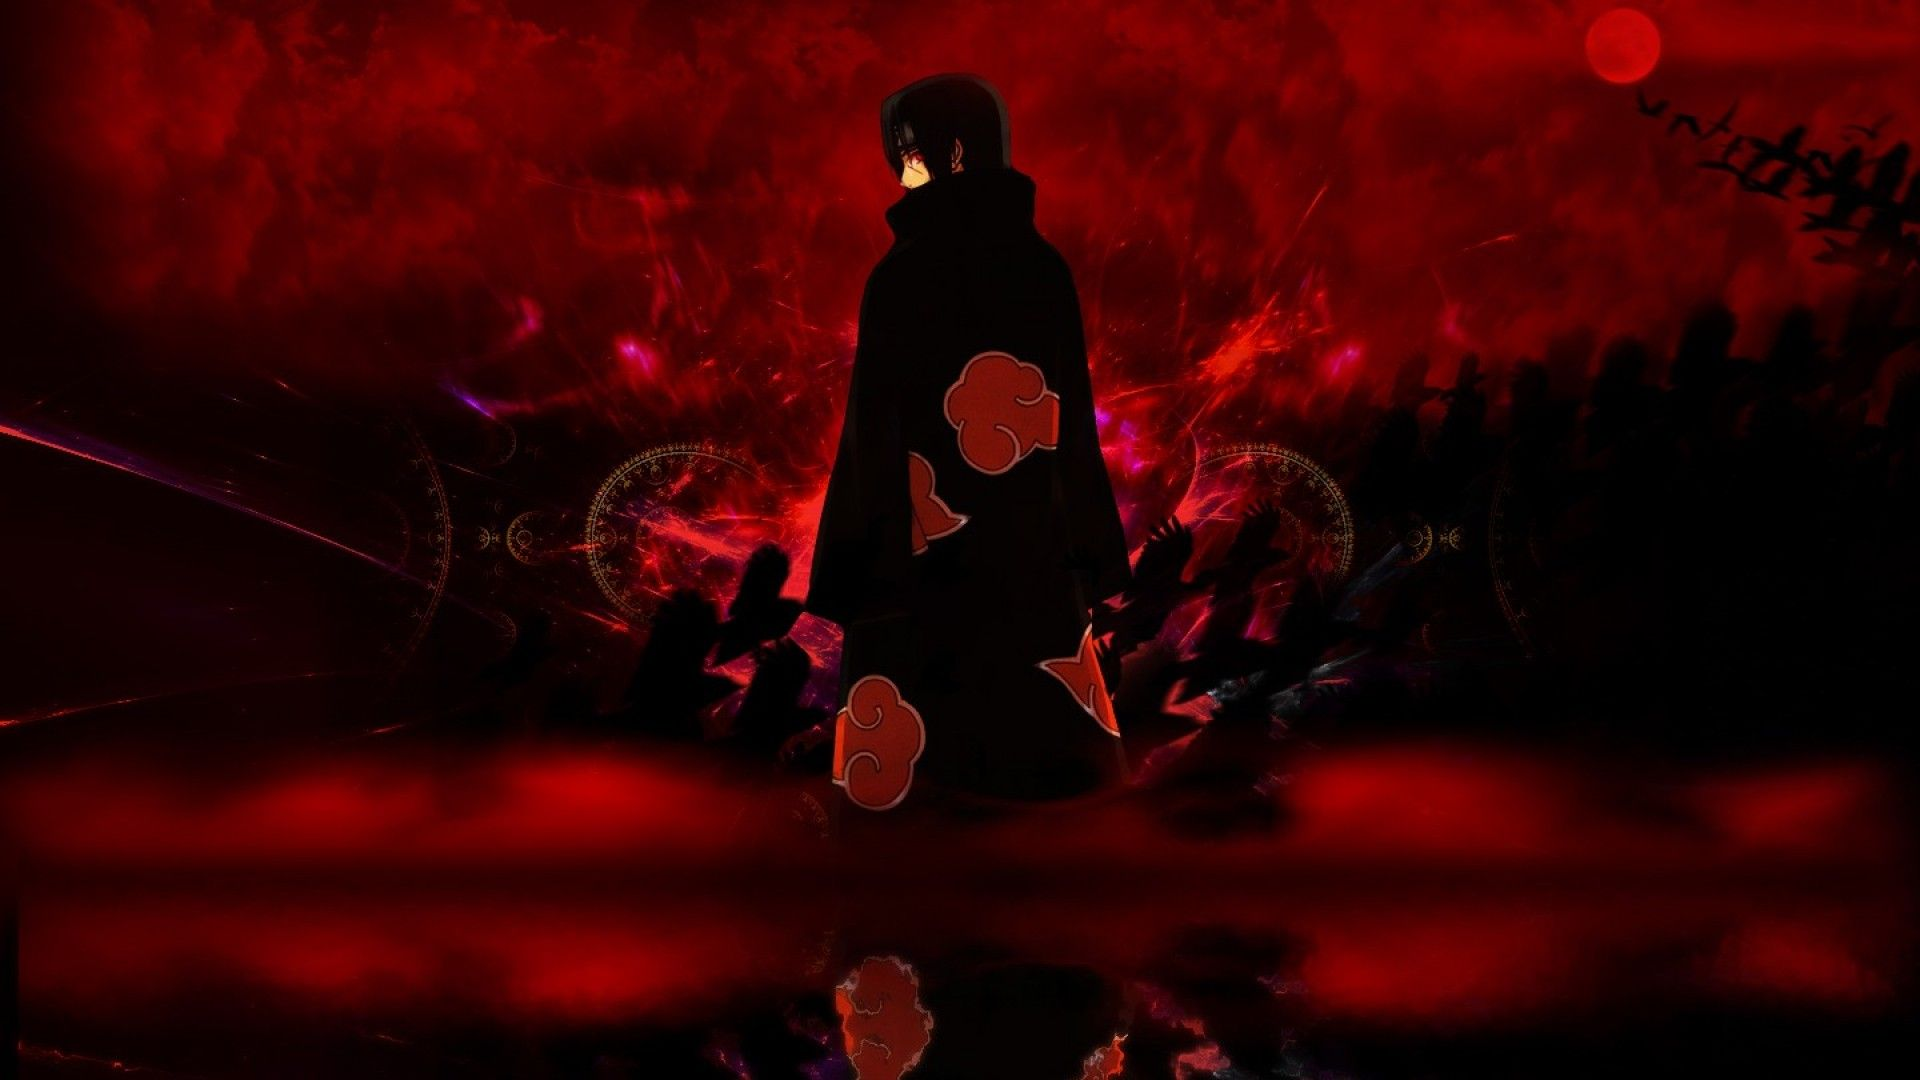 1920x1080 ScreenHeaven: Akatsuki Naruto: Shippuden Uchiha Itachi desktop and ...